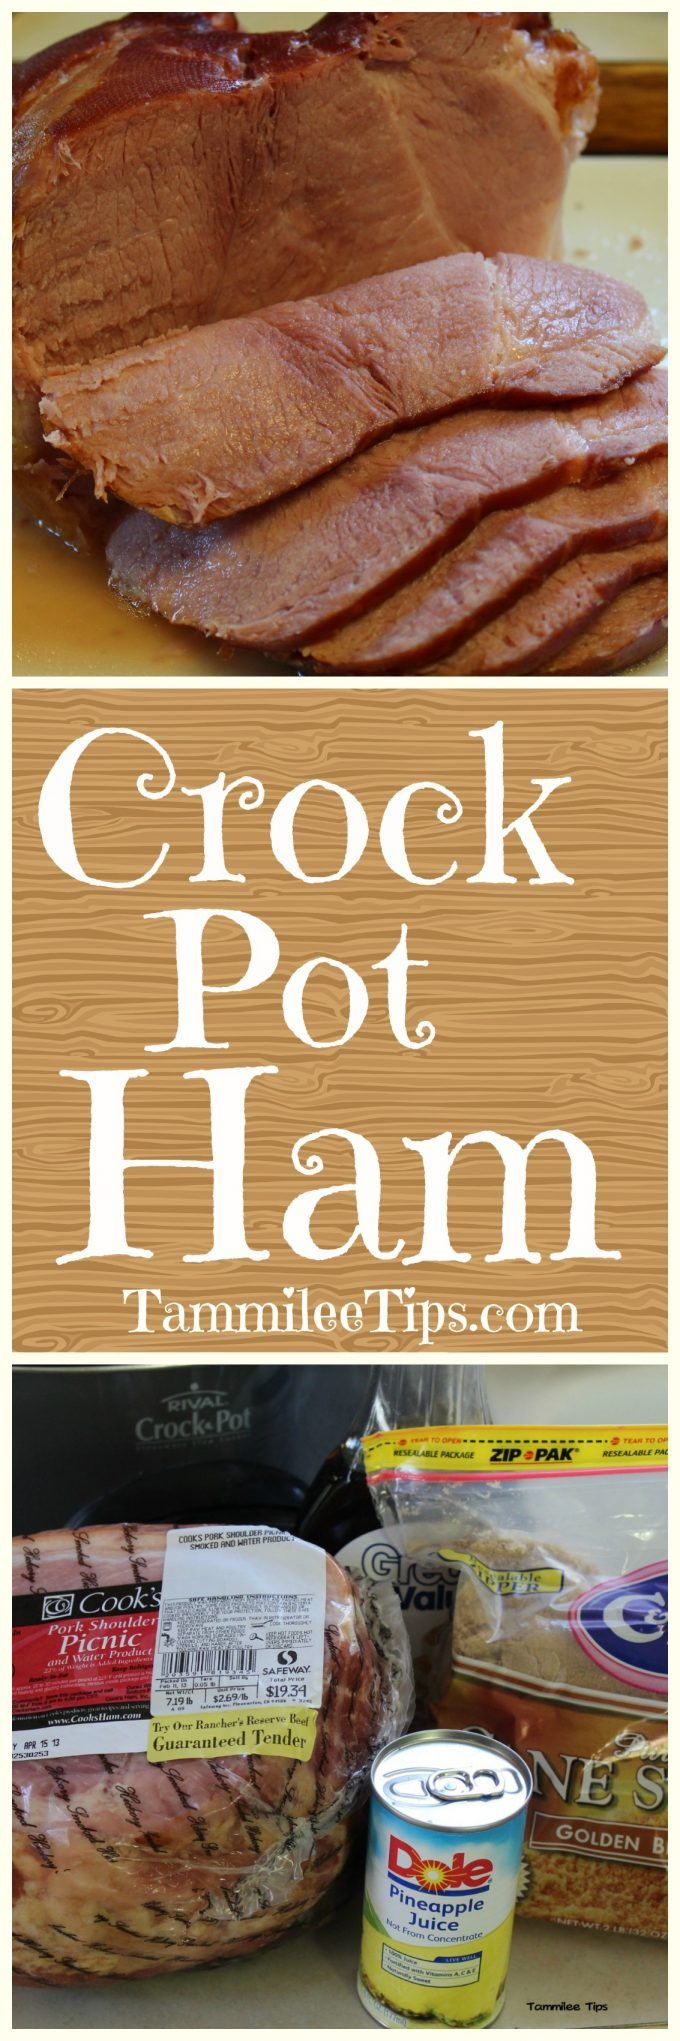 Super easy Crock Pot Ham Recipe! Make holiday prep a breeze with this easy slow cooker recipe! The perfect combination of pre cooked spiral ham, brown sugar, and pineapple juice! Add in pineapple slices for a fun addition. Great for Thanksgiving, Christmas, Easter or any day of the week!  via @tammileetips